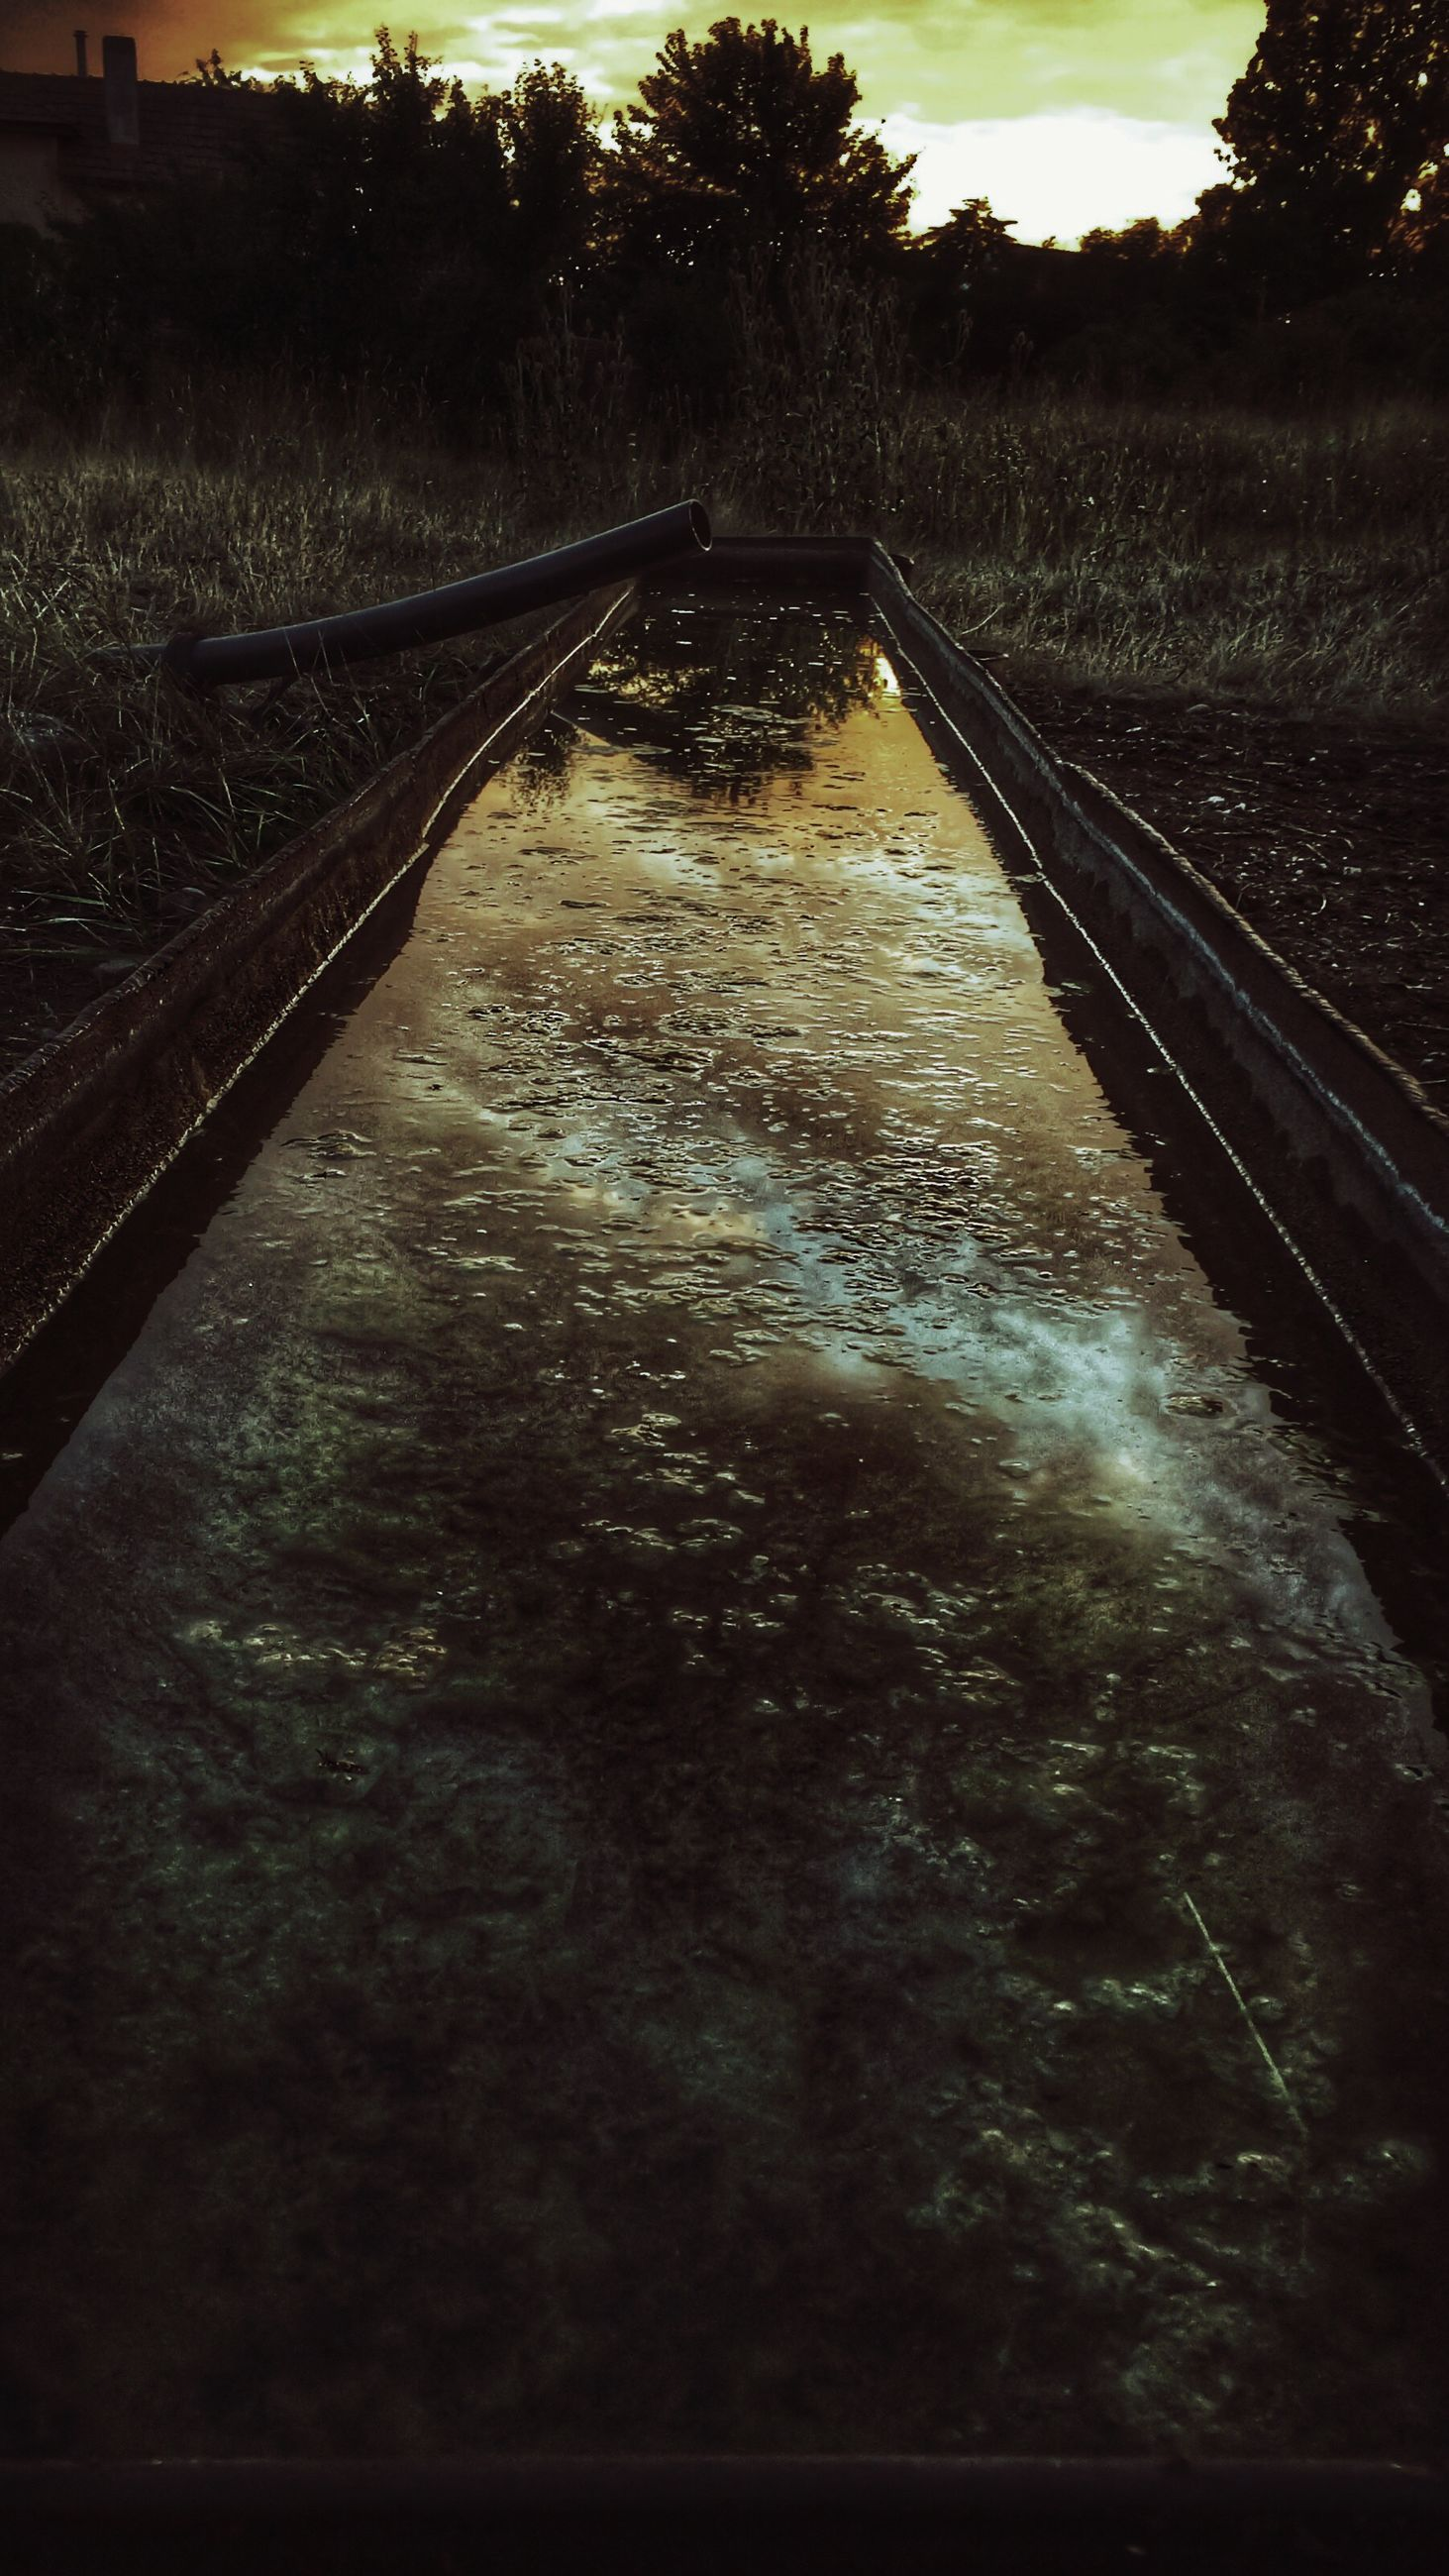 the way forward, water, transportation, diminishing perspective, vanishing point, road, tree, wet, nature, tranquility, street, river, sky, outdoors, reflection, no people, tranquil scene, asphalt, high angle view, empty road